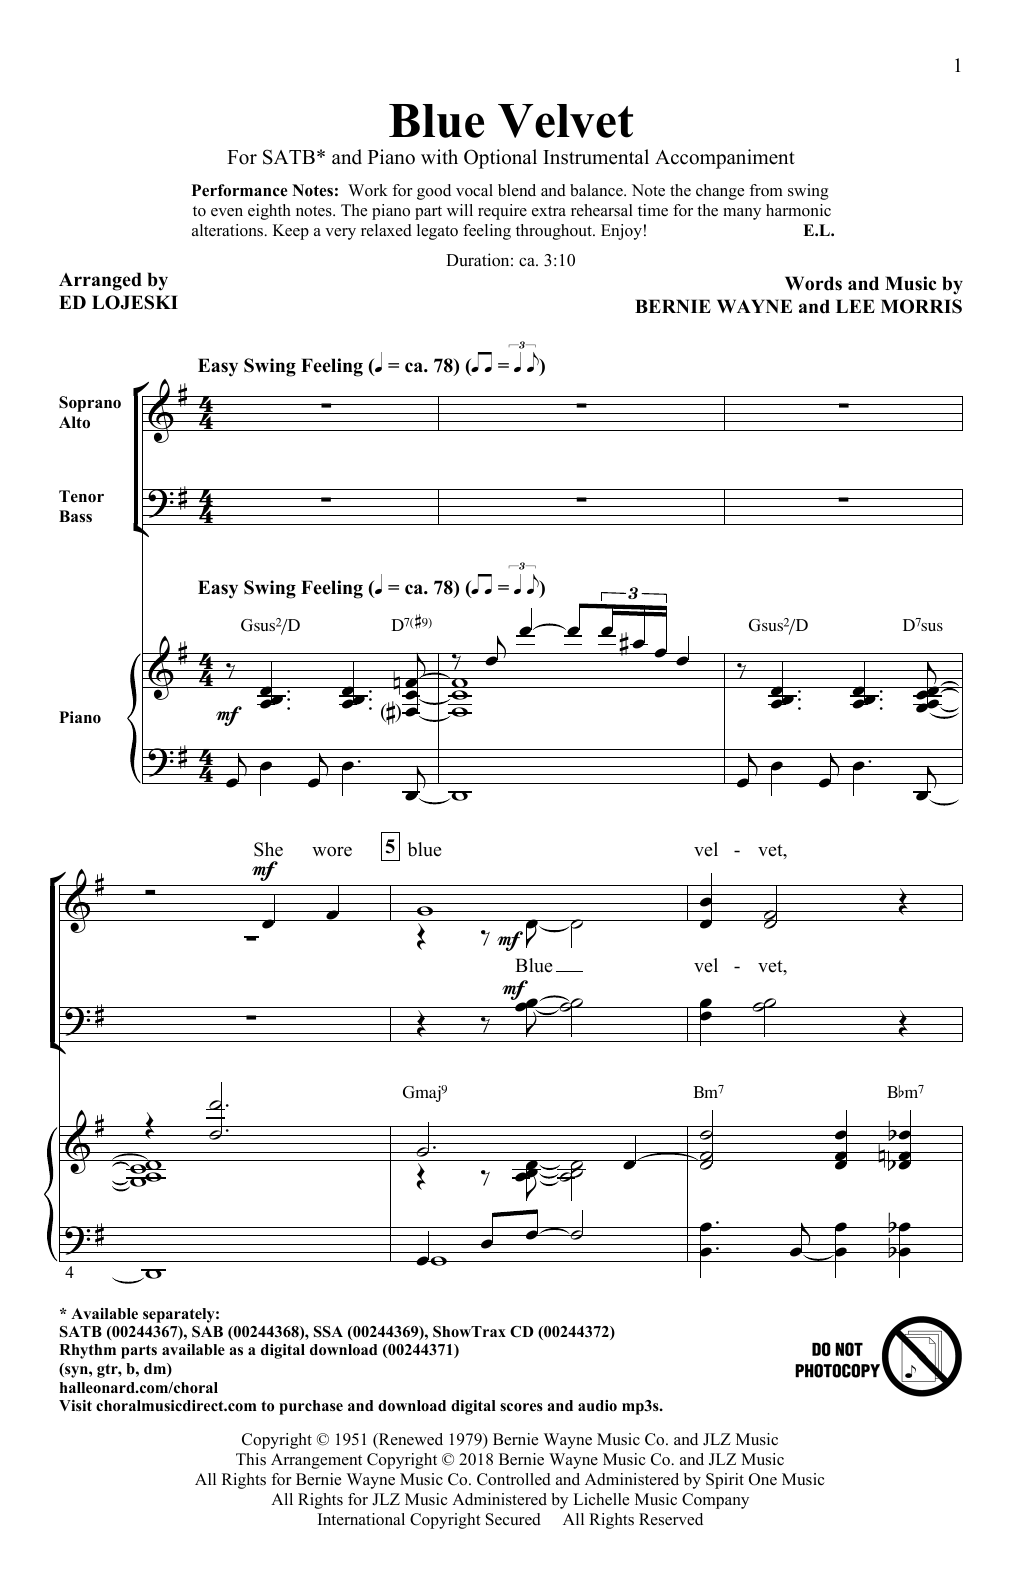 Blue Velvet (SATB Choir)